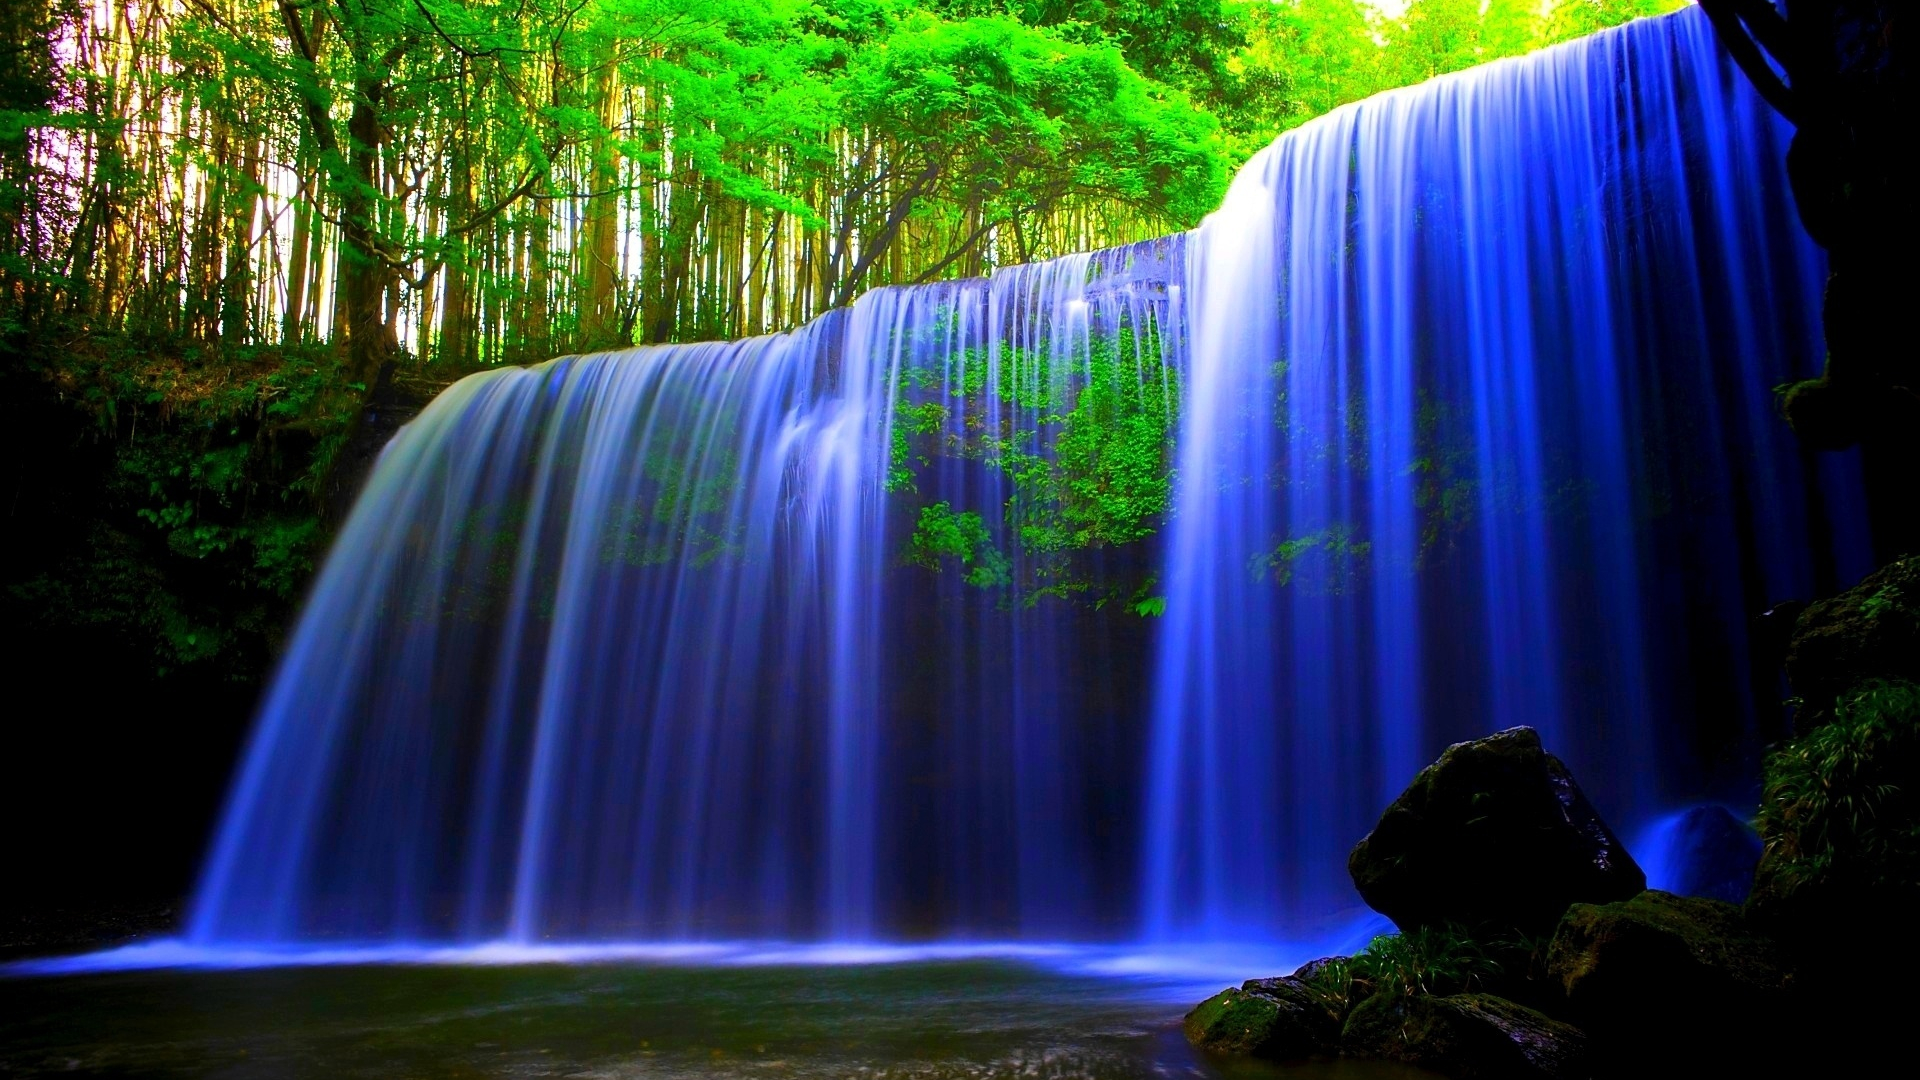 Free Download 3d Waterfall Live Wallpaper Download For Pc 1920x1200 For Your Desktop Mobile Tablet Explore 47 3d Live Wallpapers Free Download Wallpaper 3d Free Download Live Wallpapers For